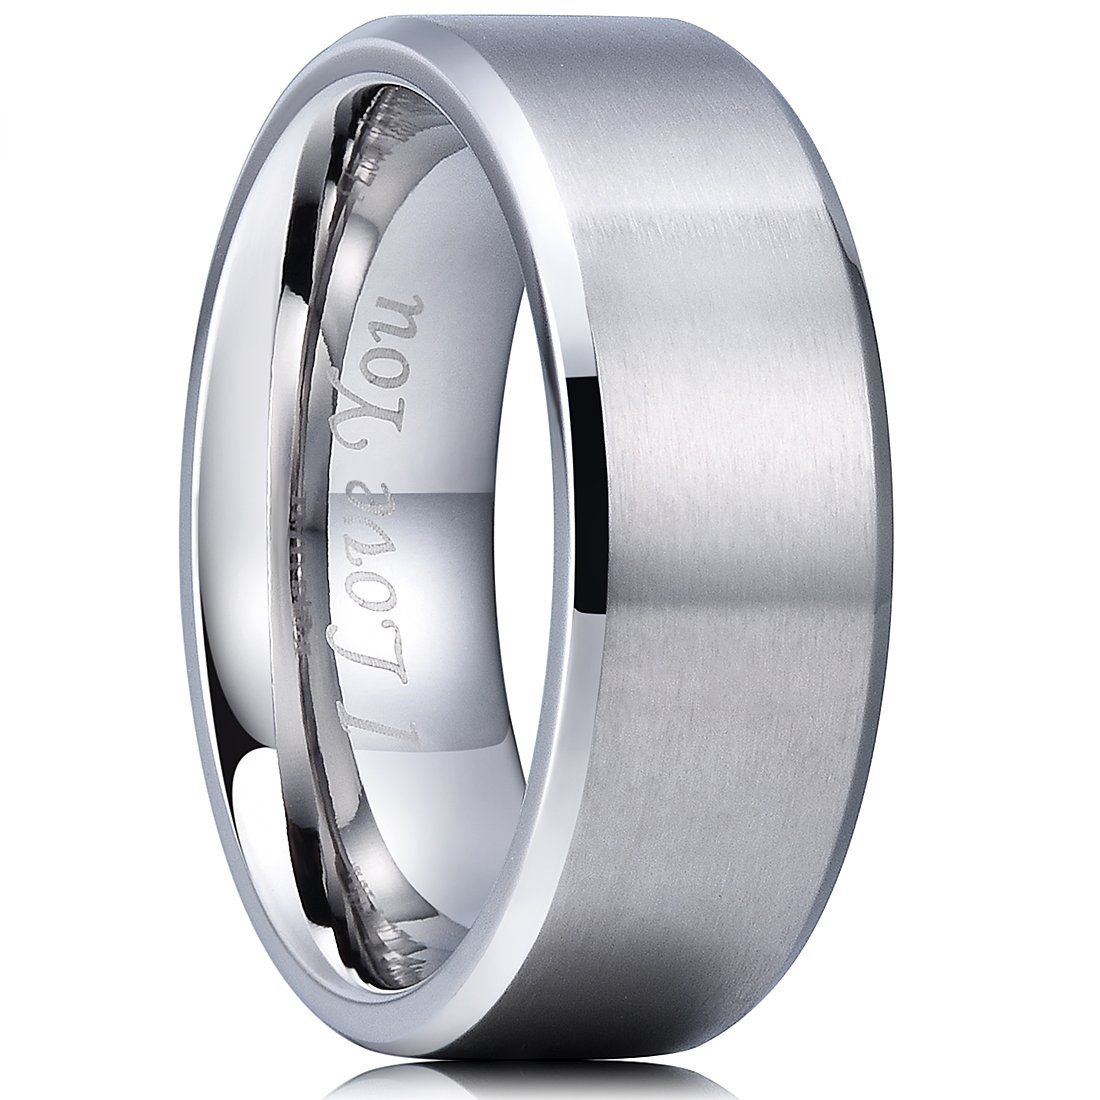 King Will Basic 8mm Stainless Steel Ring Matte Finish & Polished Beveled Edge with Laser Etched I Love You9.5